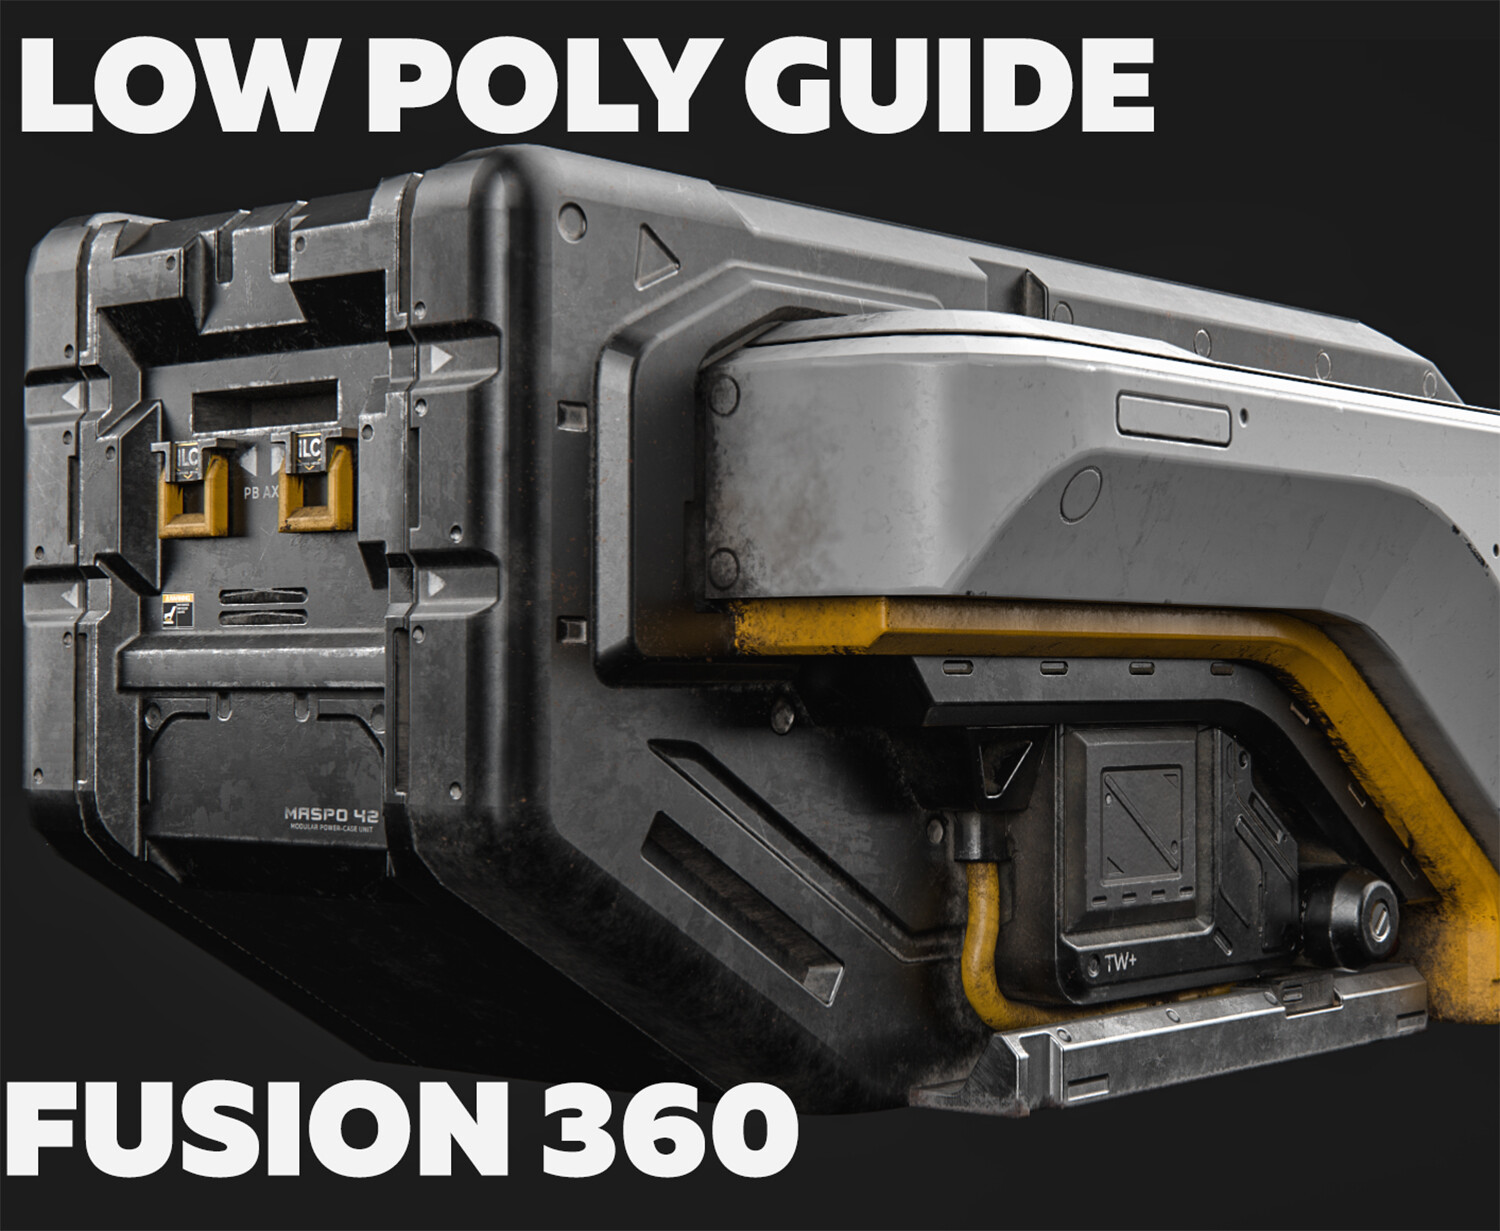 ArtStation - Game-ready Lowpoly asset from Fusion 360 Guide